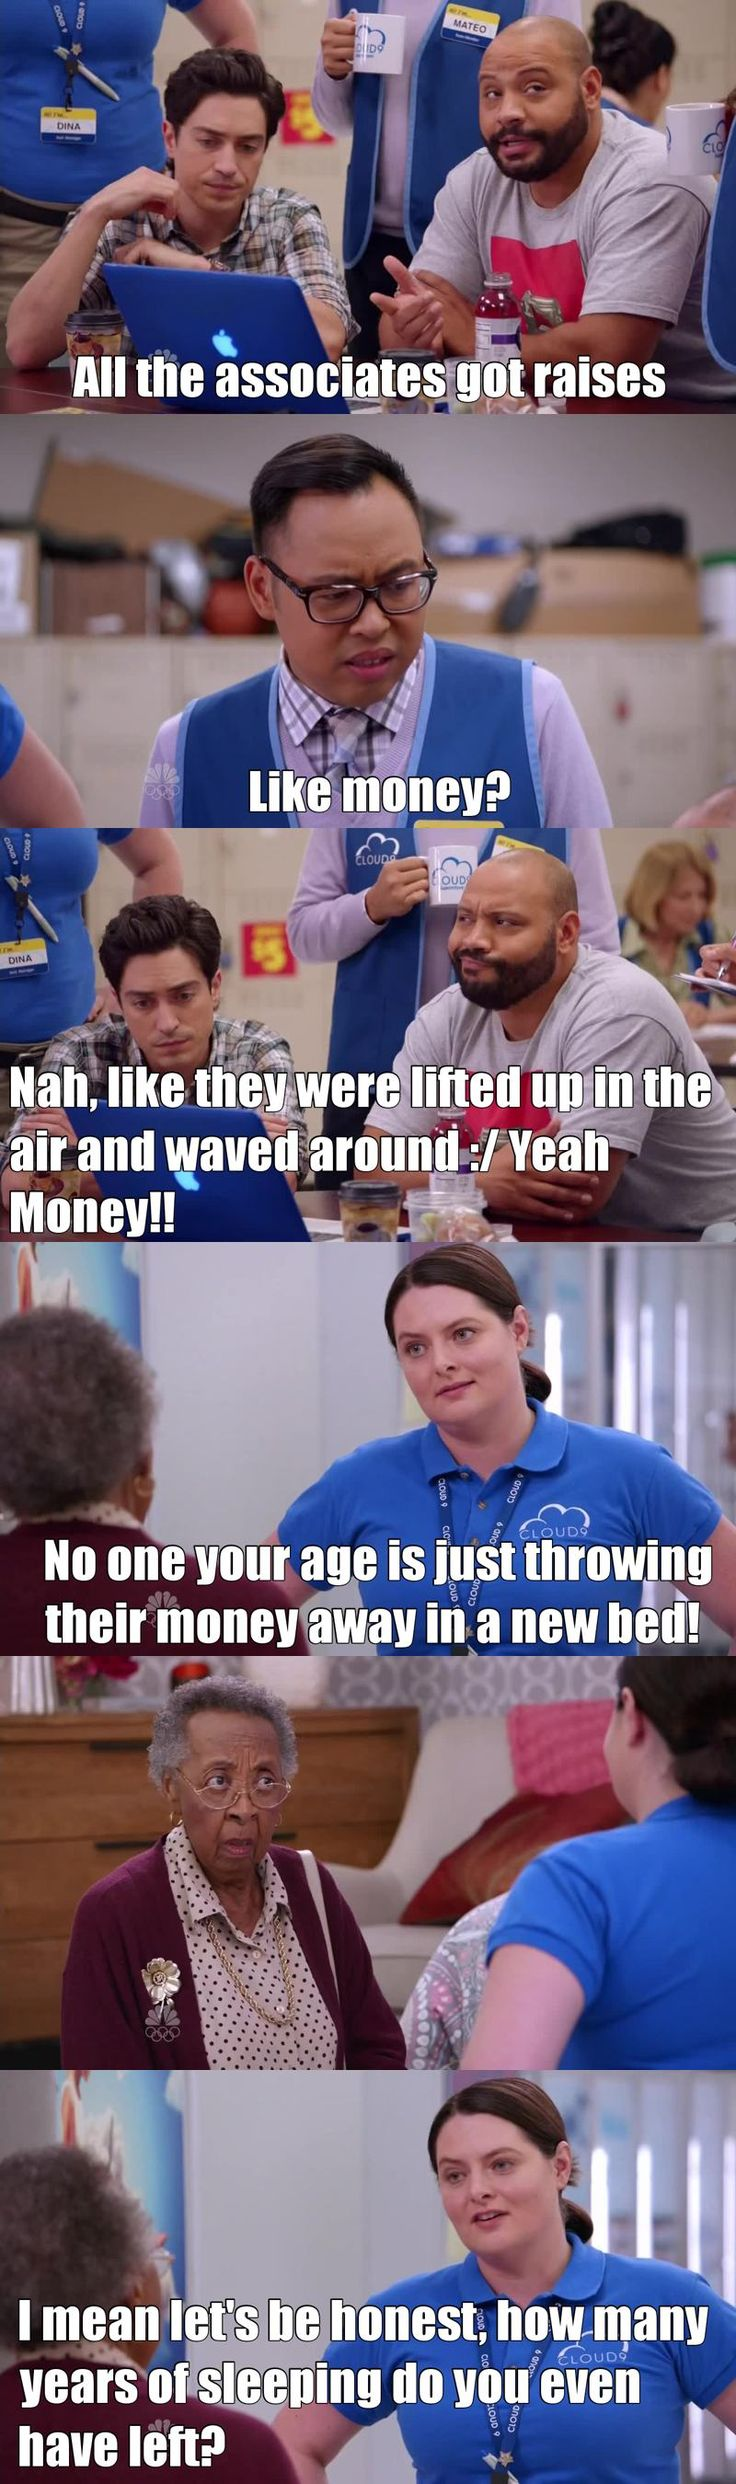 I LOVE THIS SHOW.